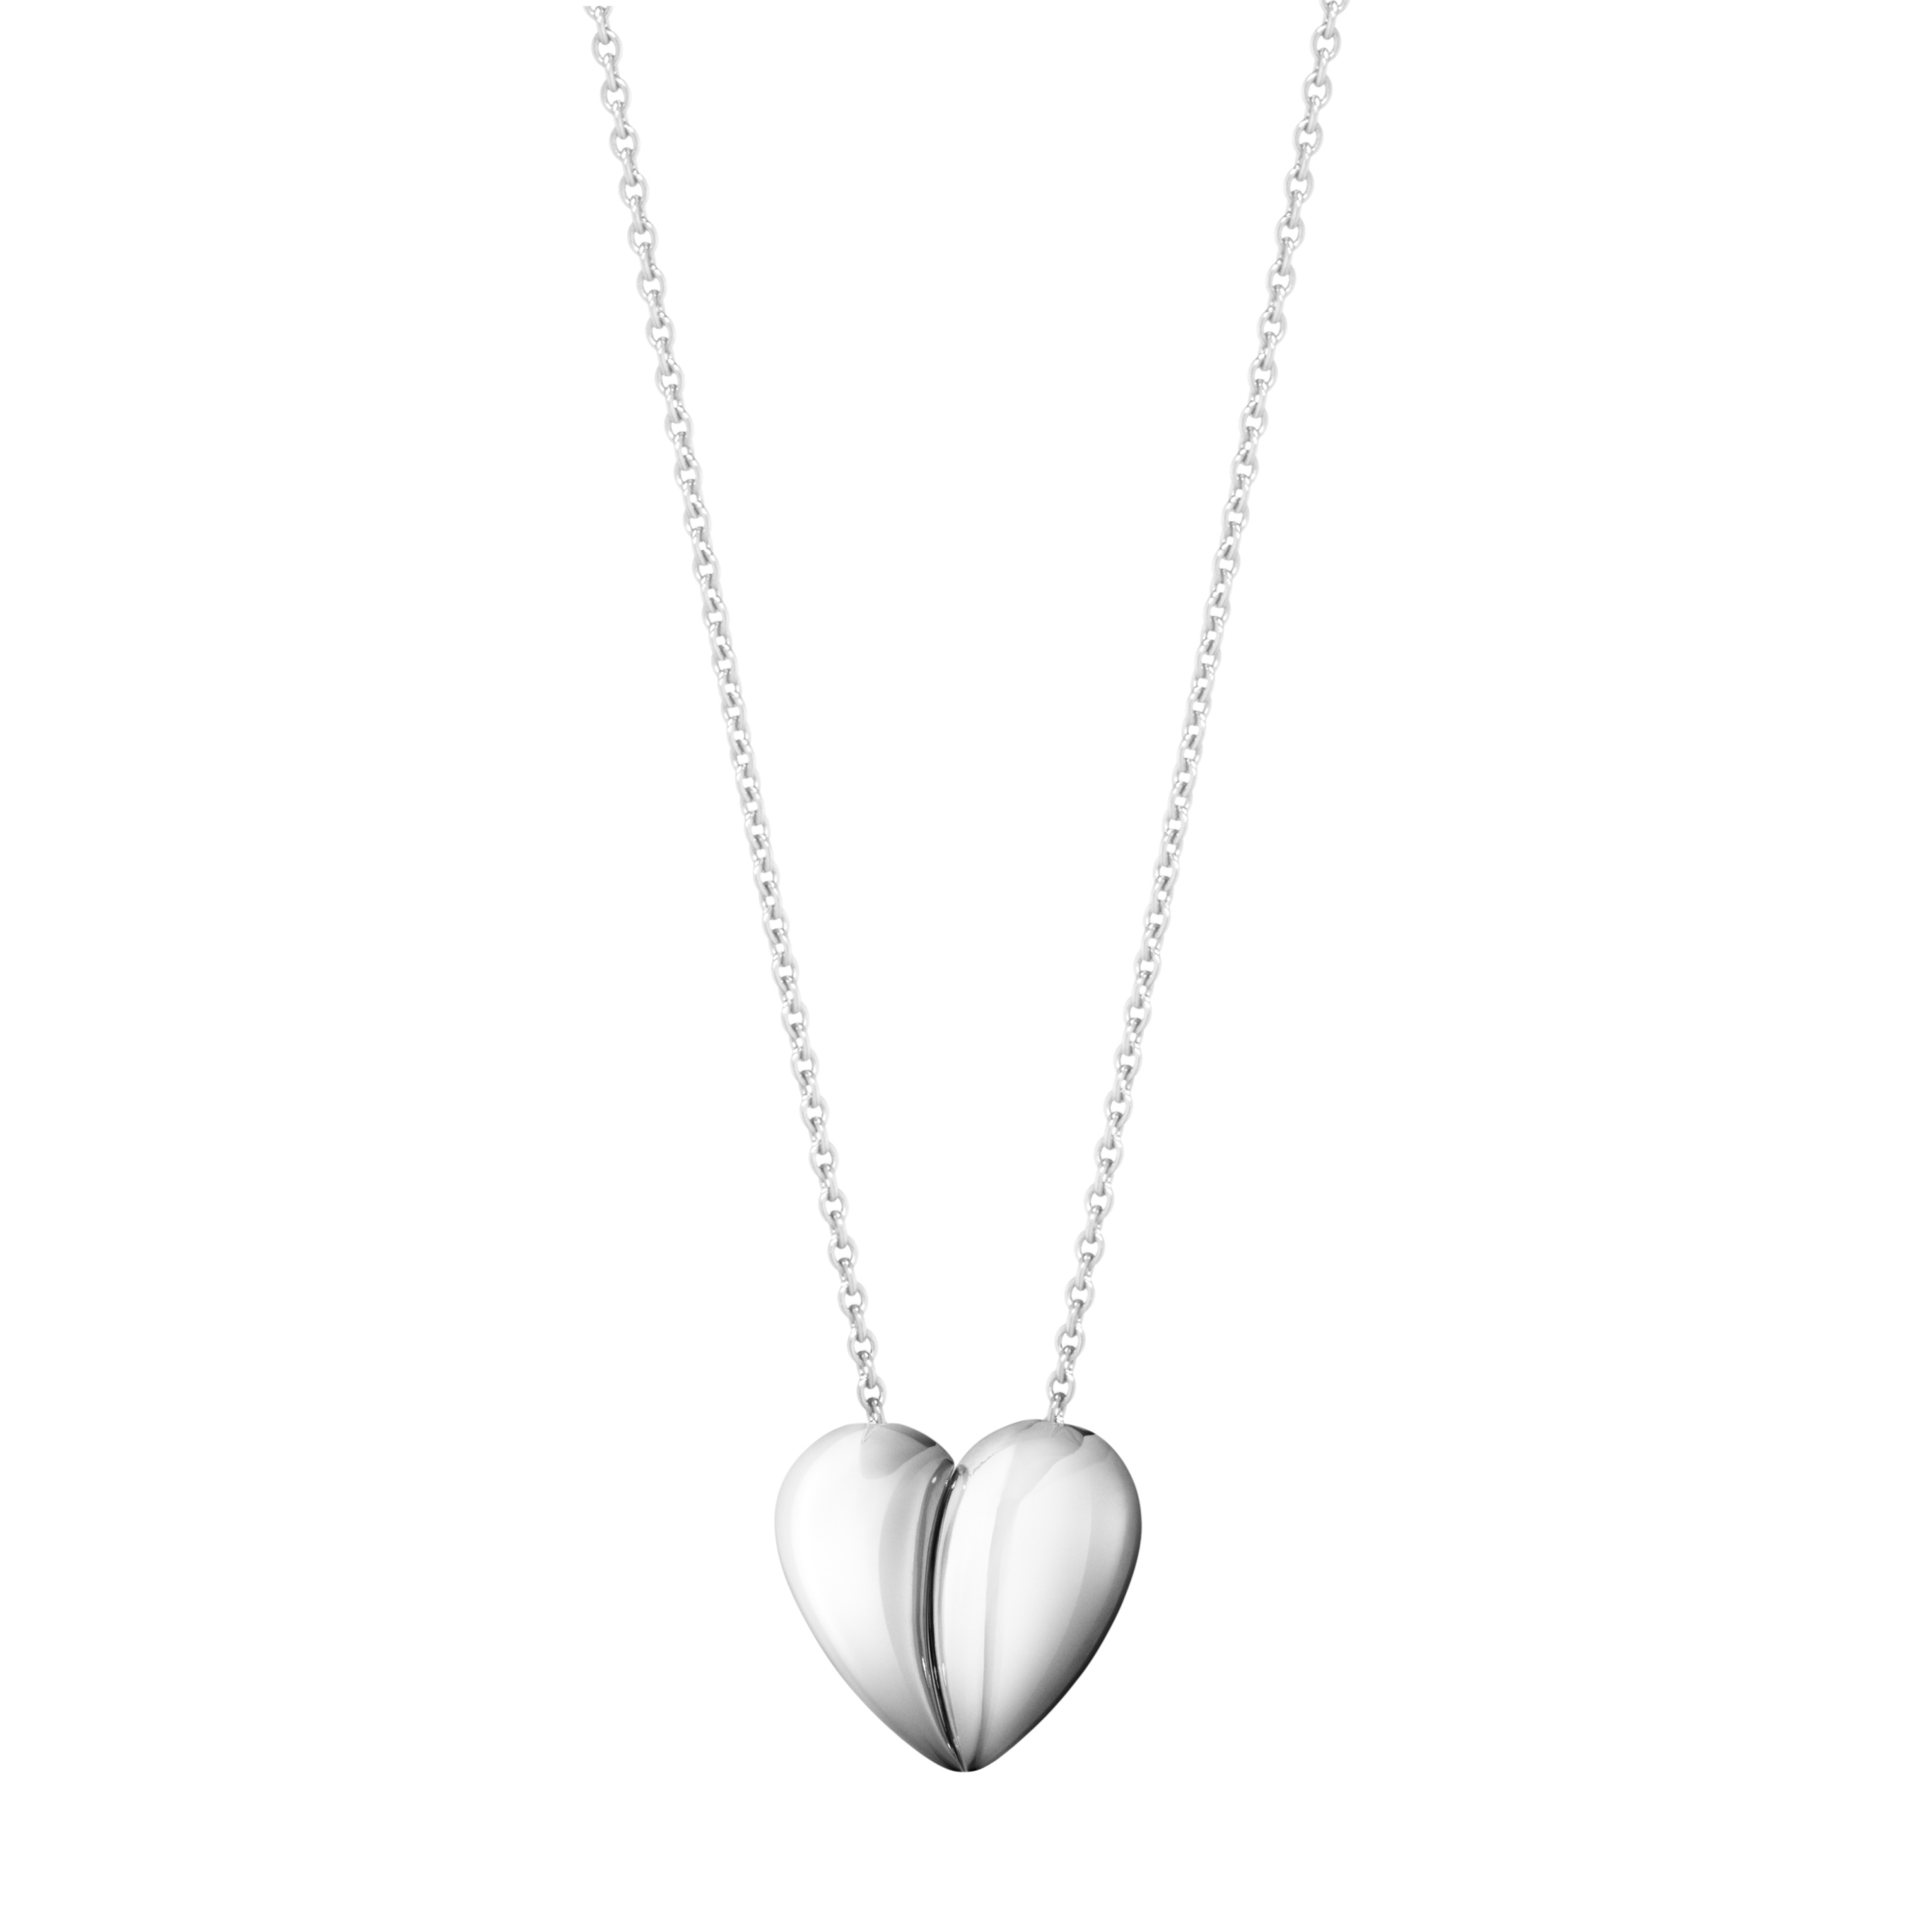 10017504_CURVE_HEART_PENDANT_638_STERLING_SILVER